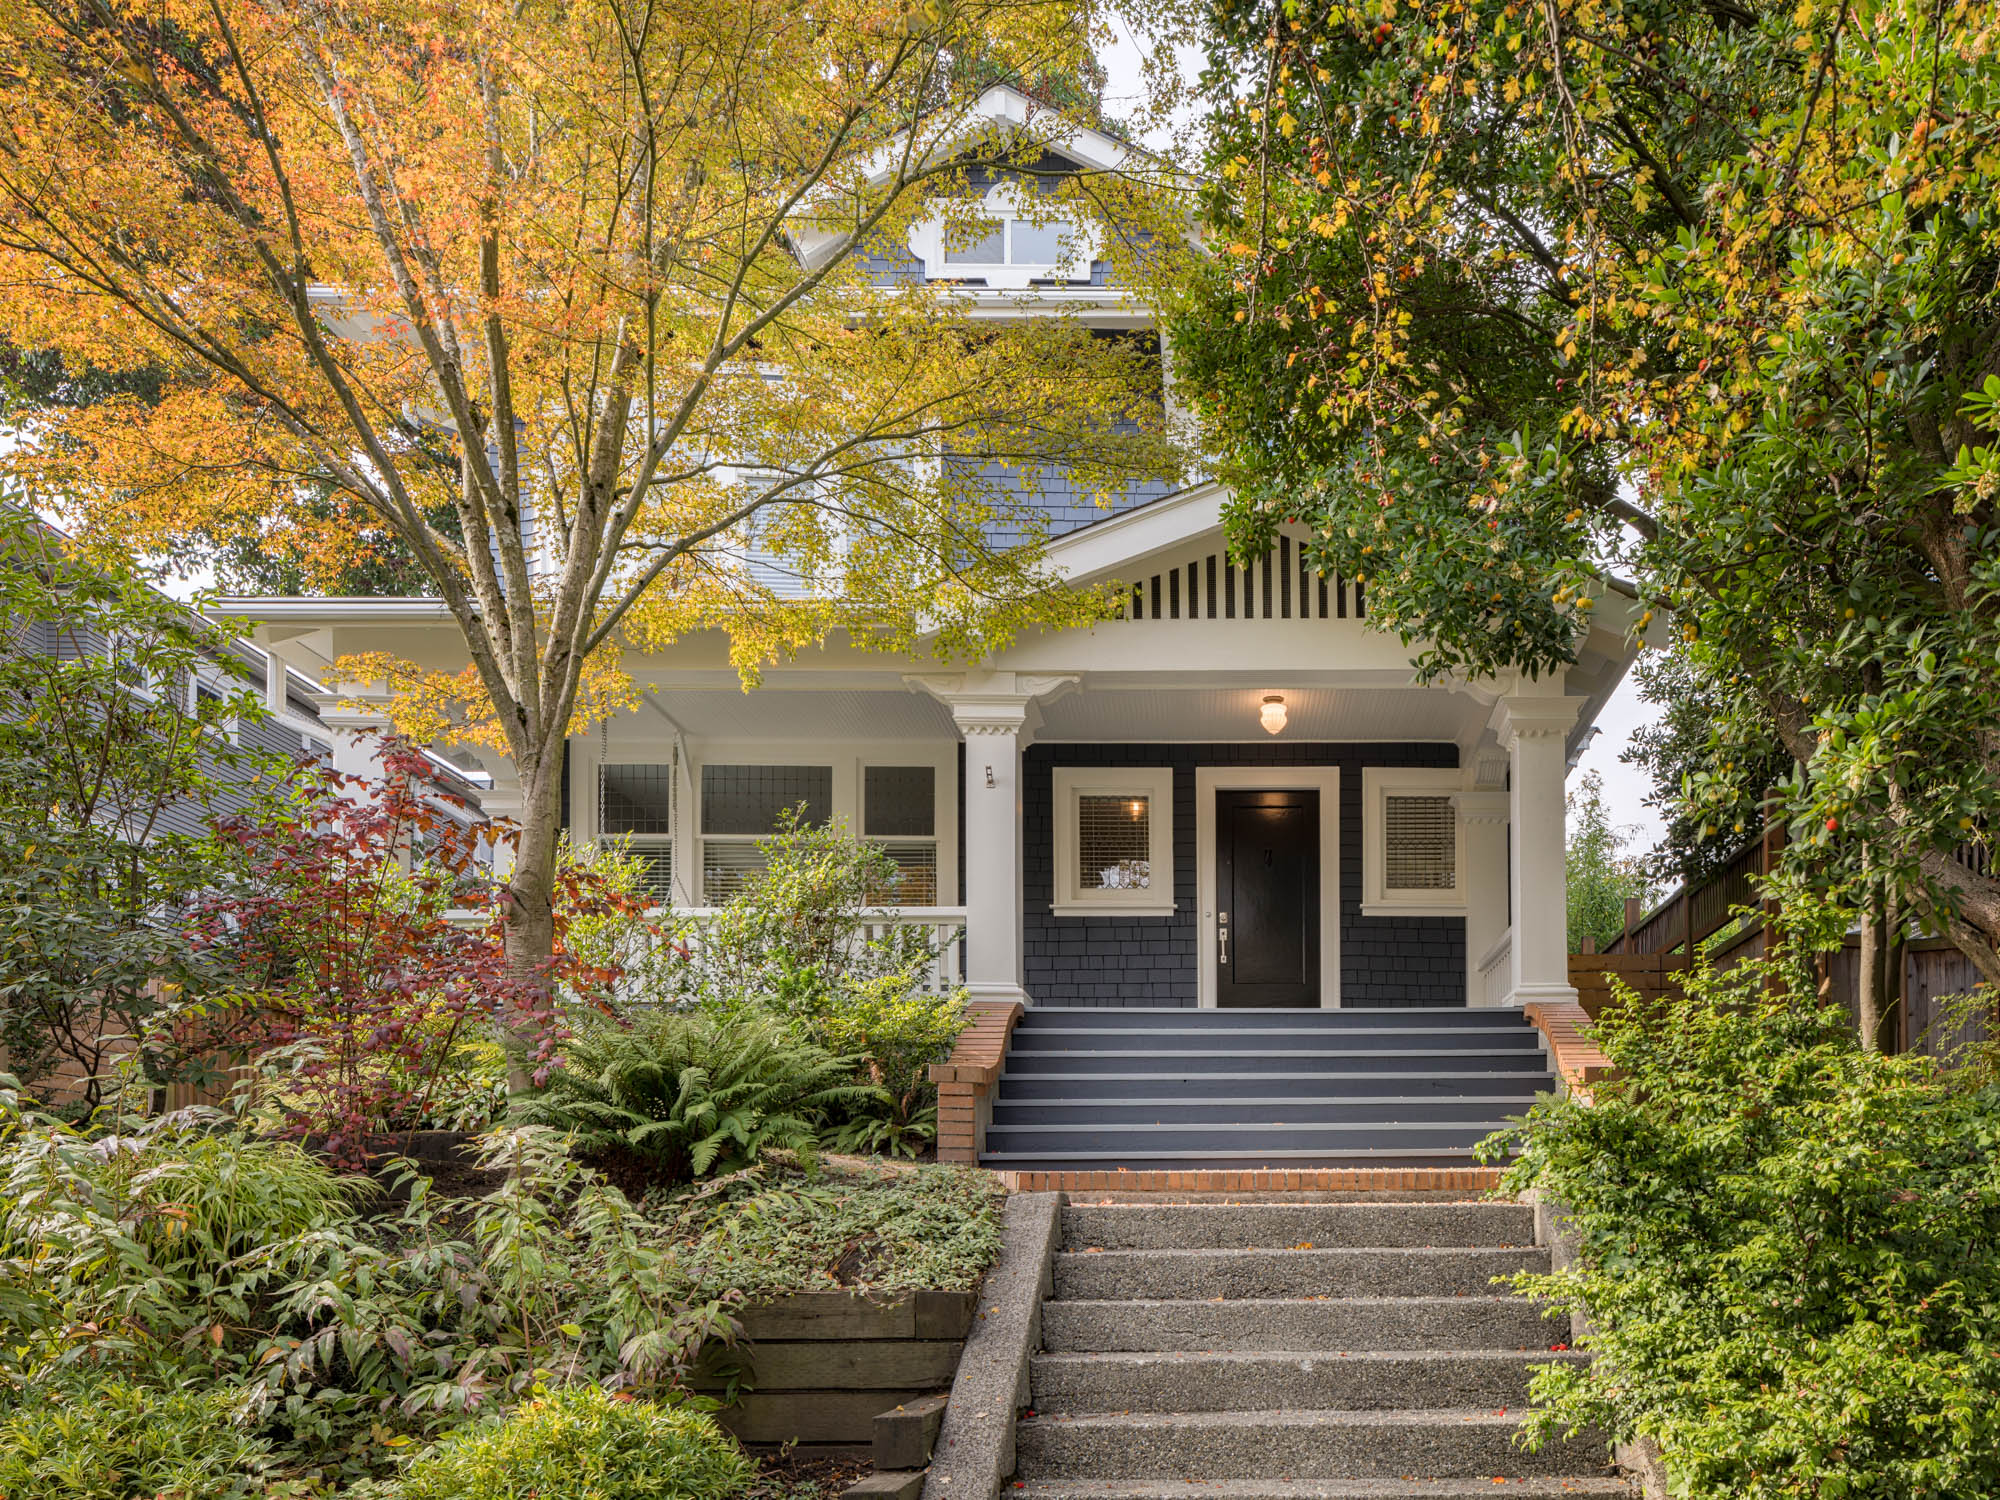 Contemporary Classic - Seattle Architects - CTA Design Build - Transitional, Remodel